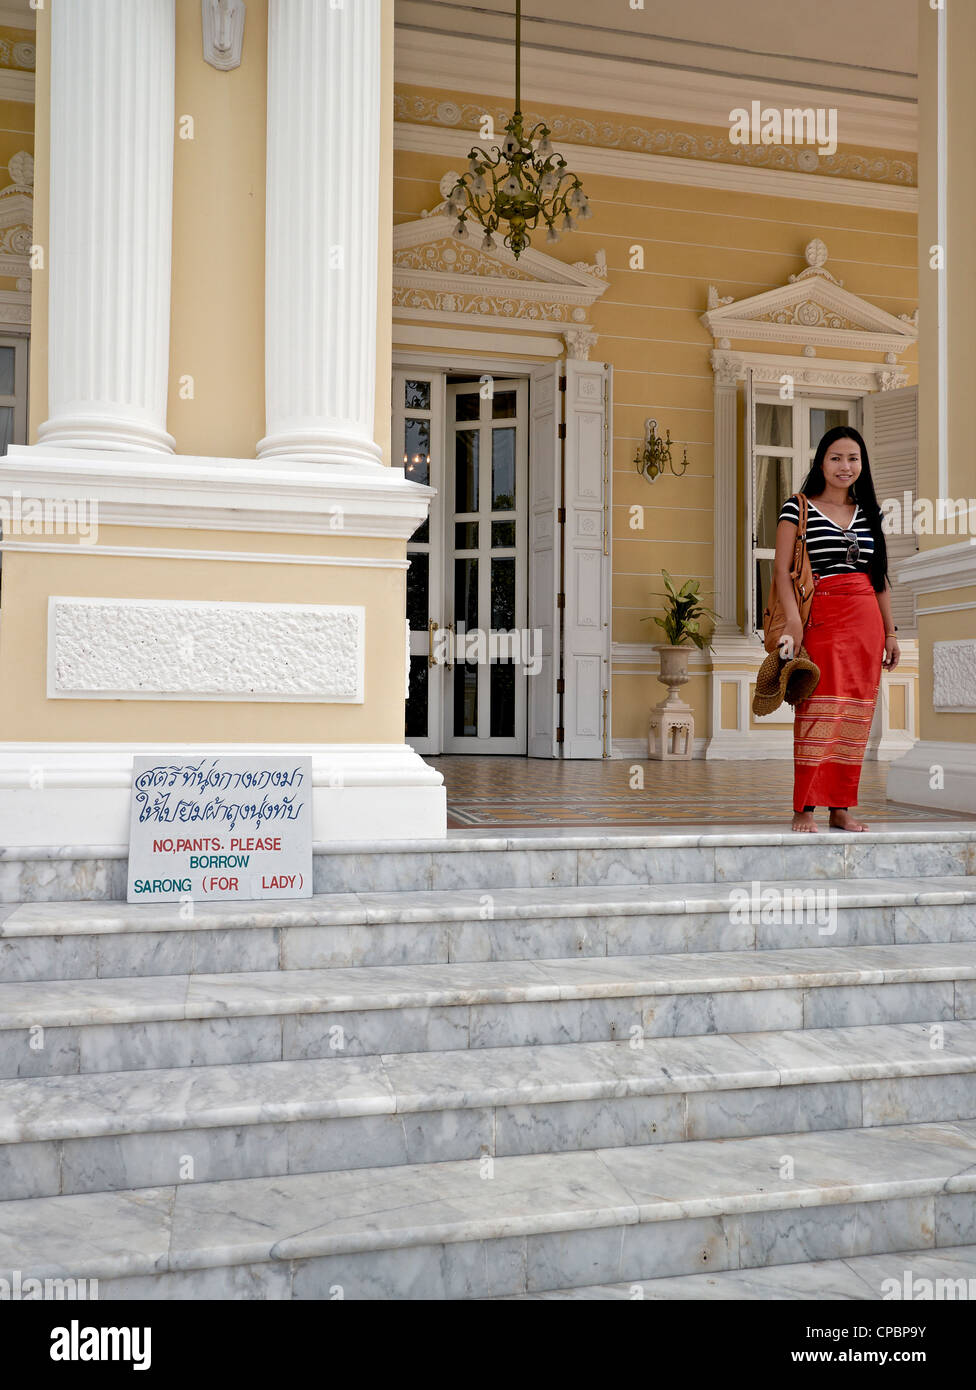 The strict code of dress at The King of Thailand's summer palace at Bang Pa In Ayutthaya Thailand S.E. Asia - Stock Image